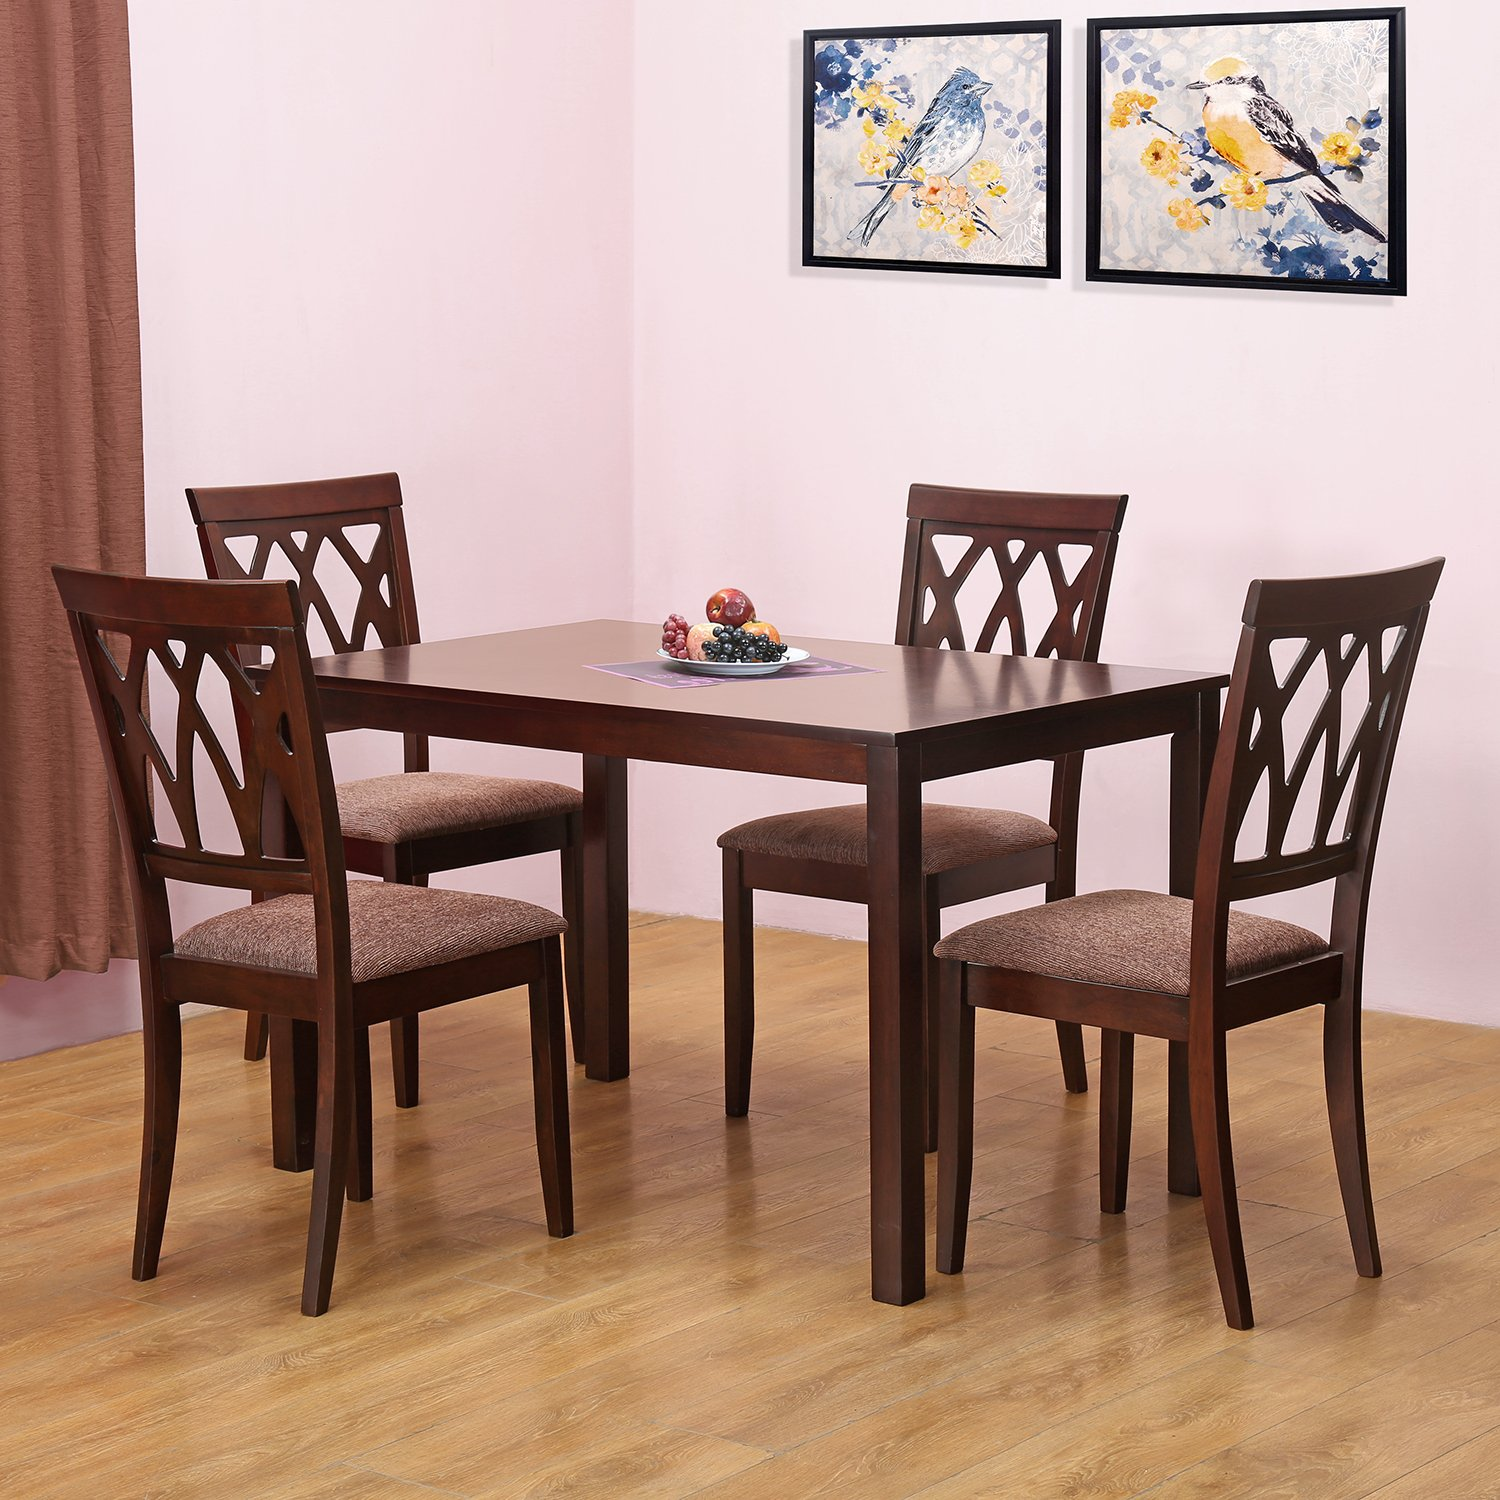 home by Nilkamal Peak Four Seater Dining Table Set Beige  : 81Or9weBD1LSL1500 from onlinebestfurniture.blogspot.com size 1500 x 1500 jpeg 344kB